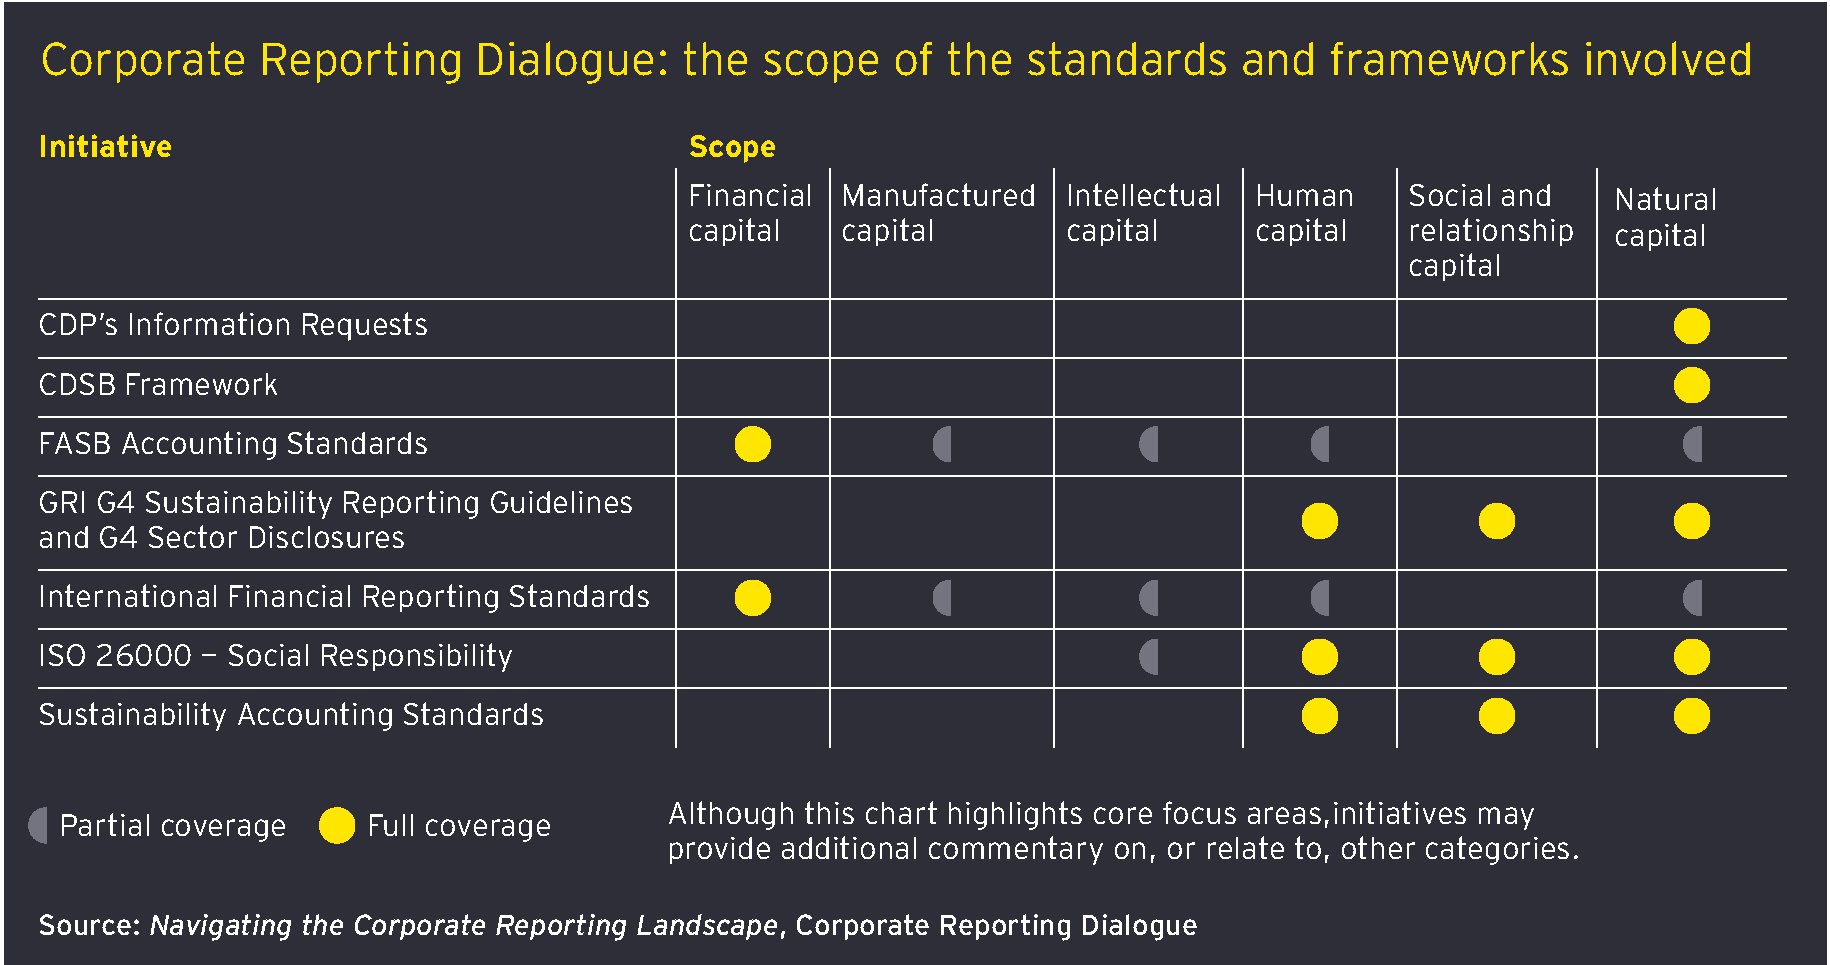 Why corporate reporting standards are starting to converge